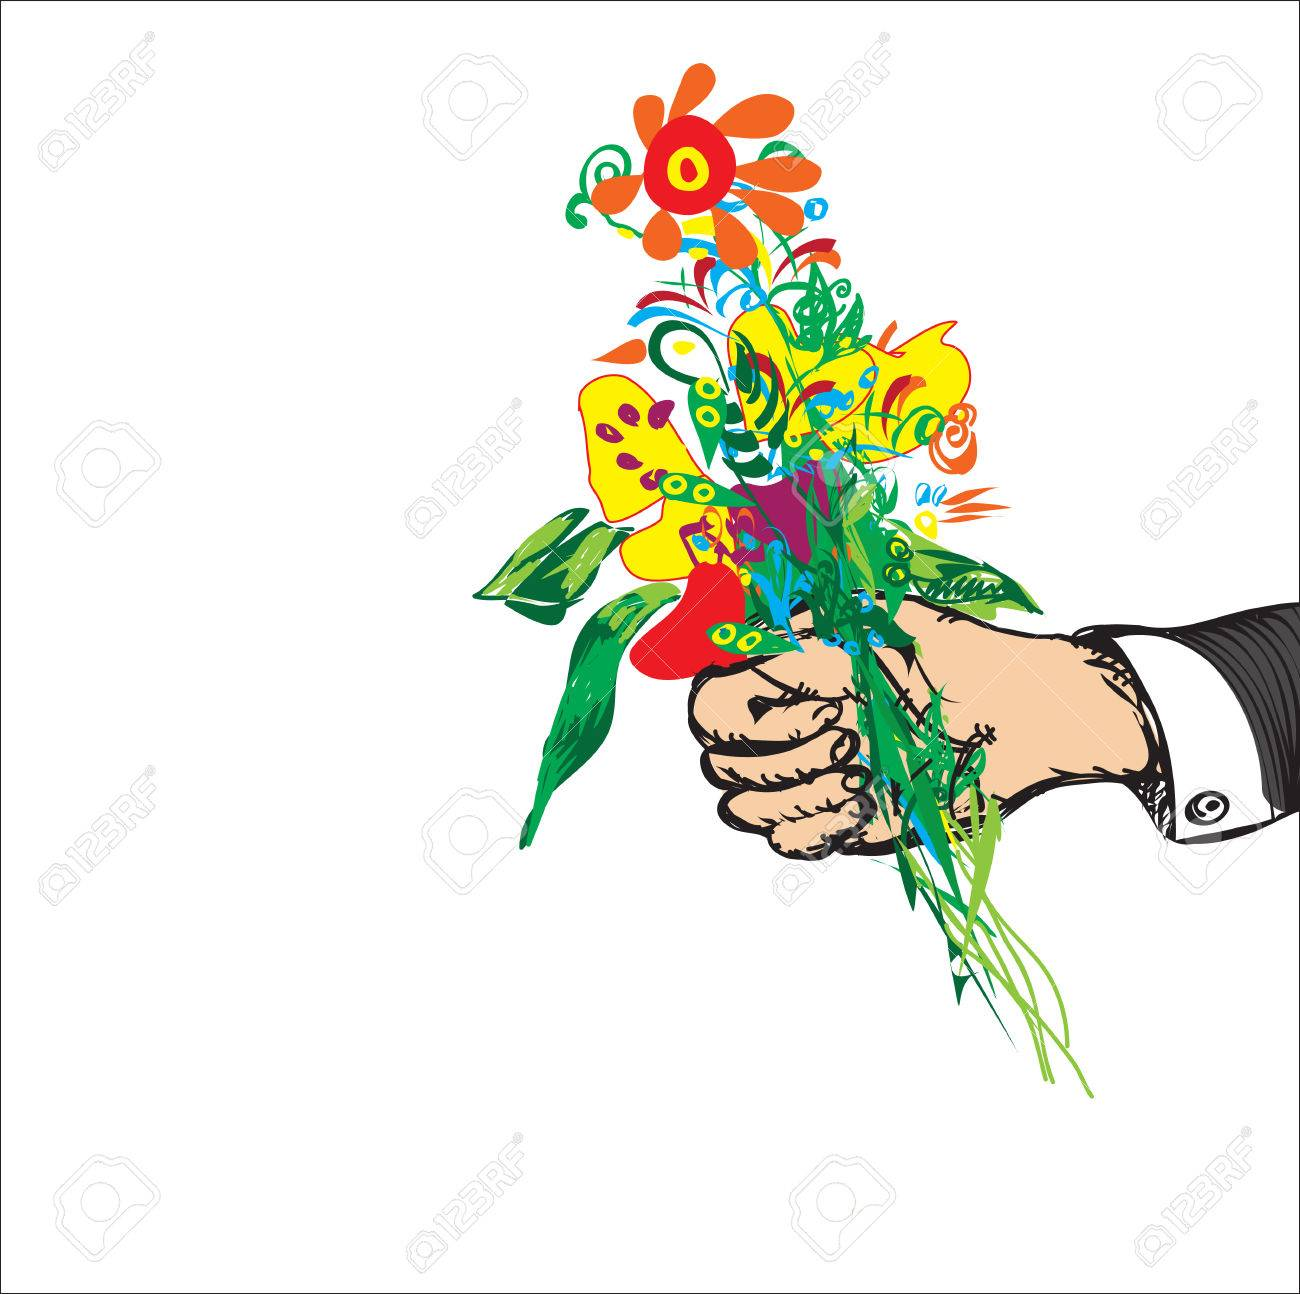 drawn male hand with a bouquet of abstract flowers isolated